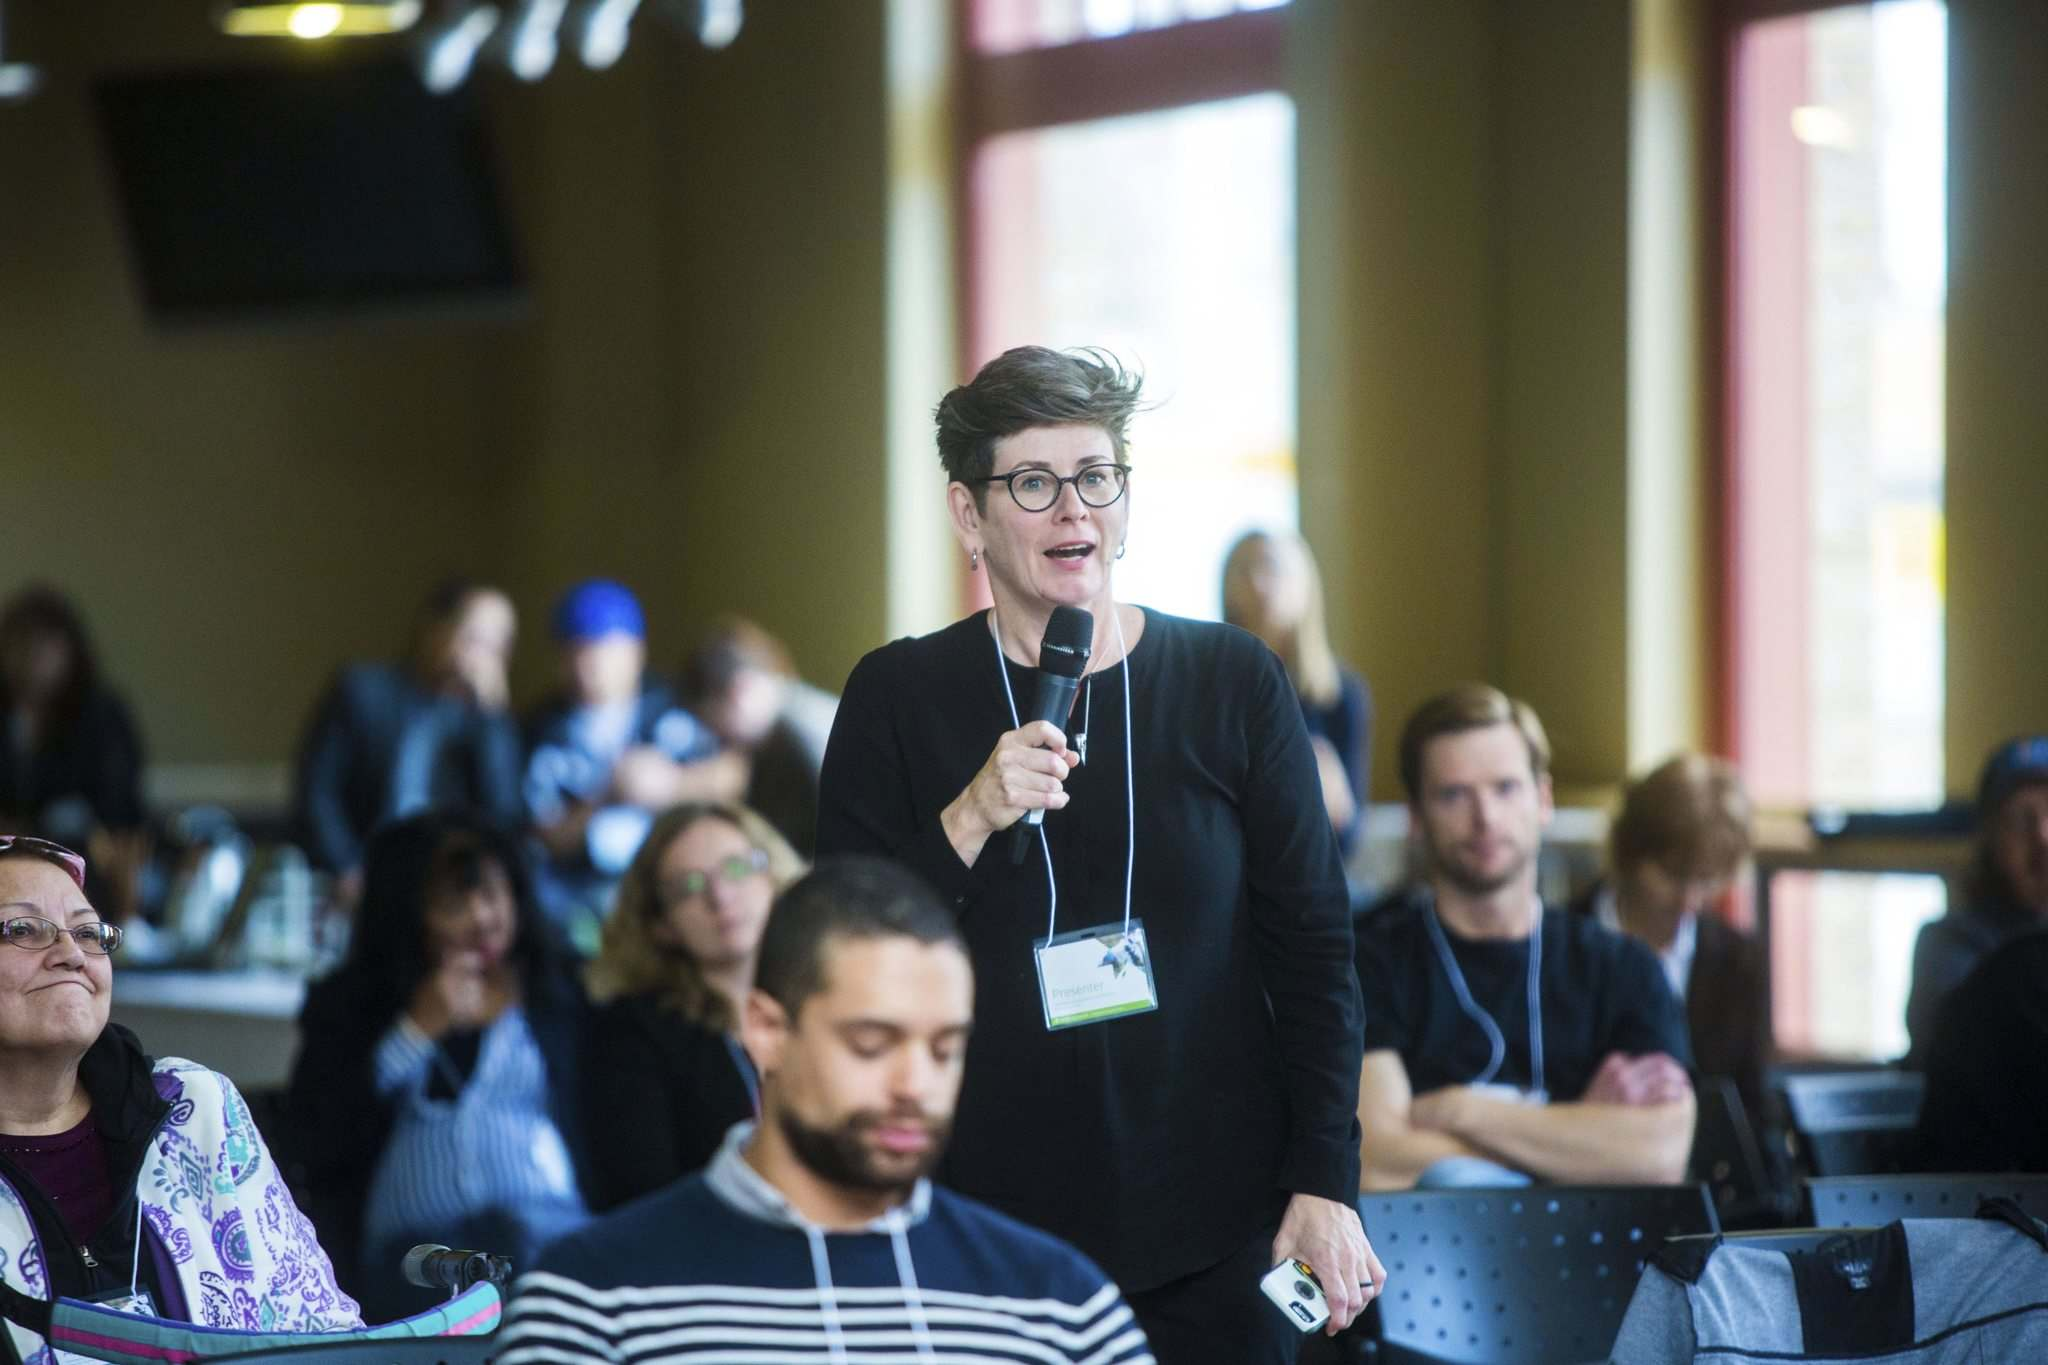 MIKAELA MACKENZIE photos / WINNIPEG FREE PRESS</p><p>Dr. Shelley Turner from OneLeaf Cannabis speaks at a marijuana legalization conference led by Red River College's School of Indigenous Education on Friday. A new course is being introduced to teach the ins and outs of the industry.</p>